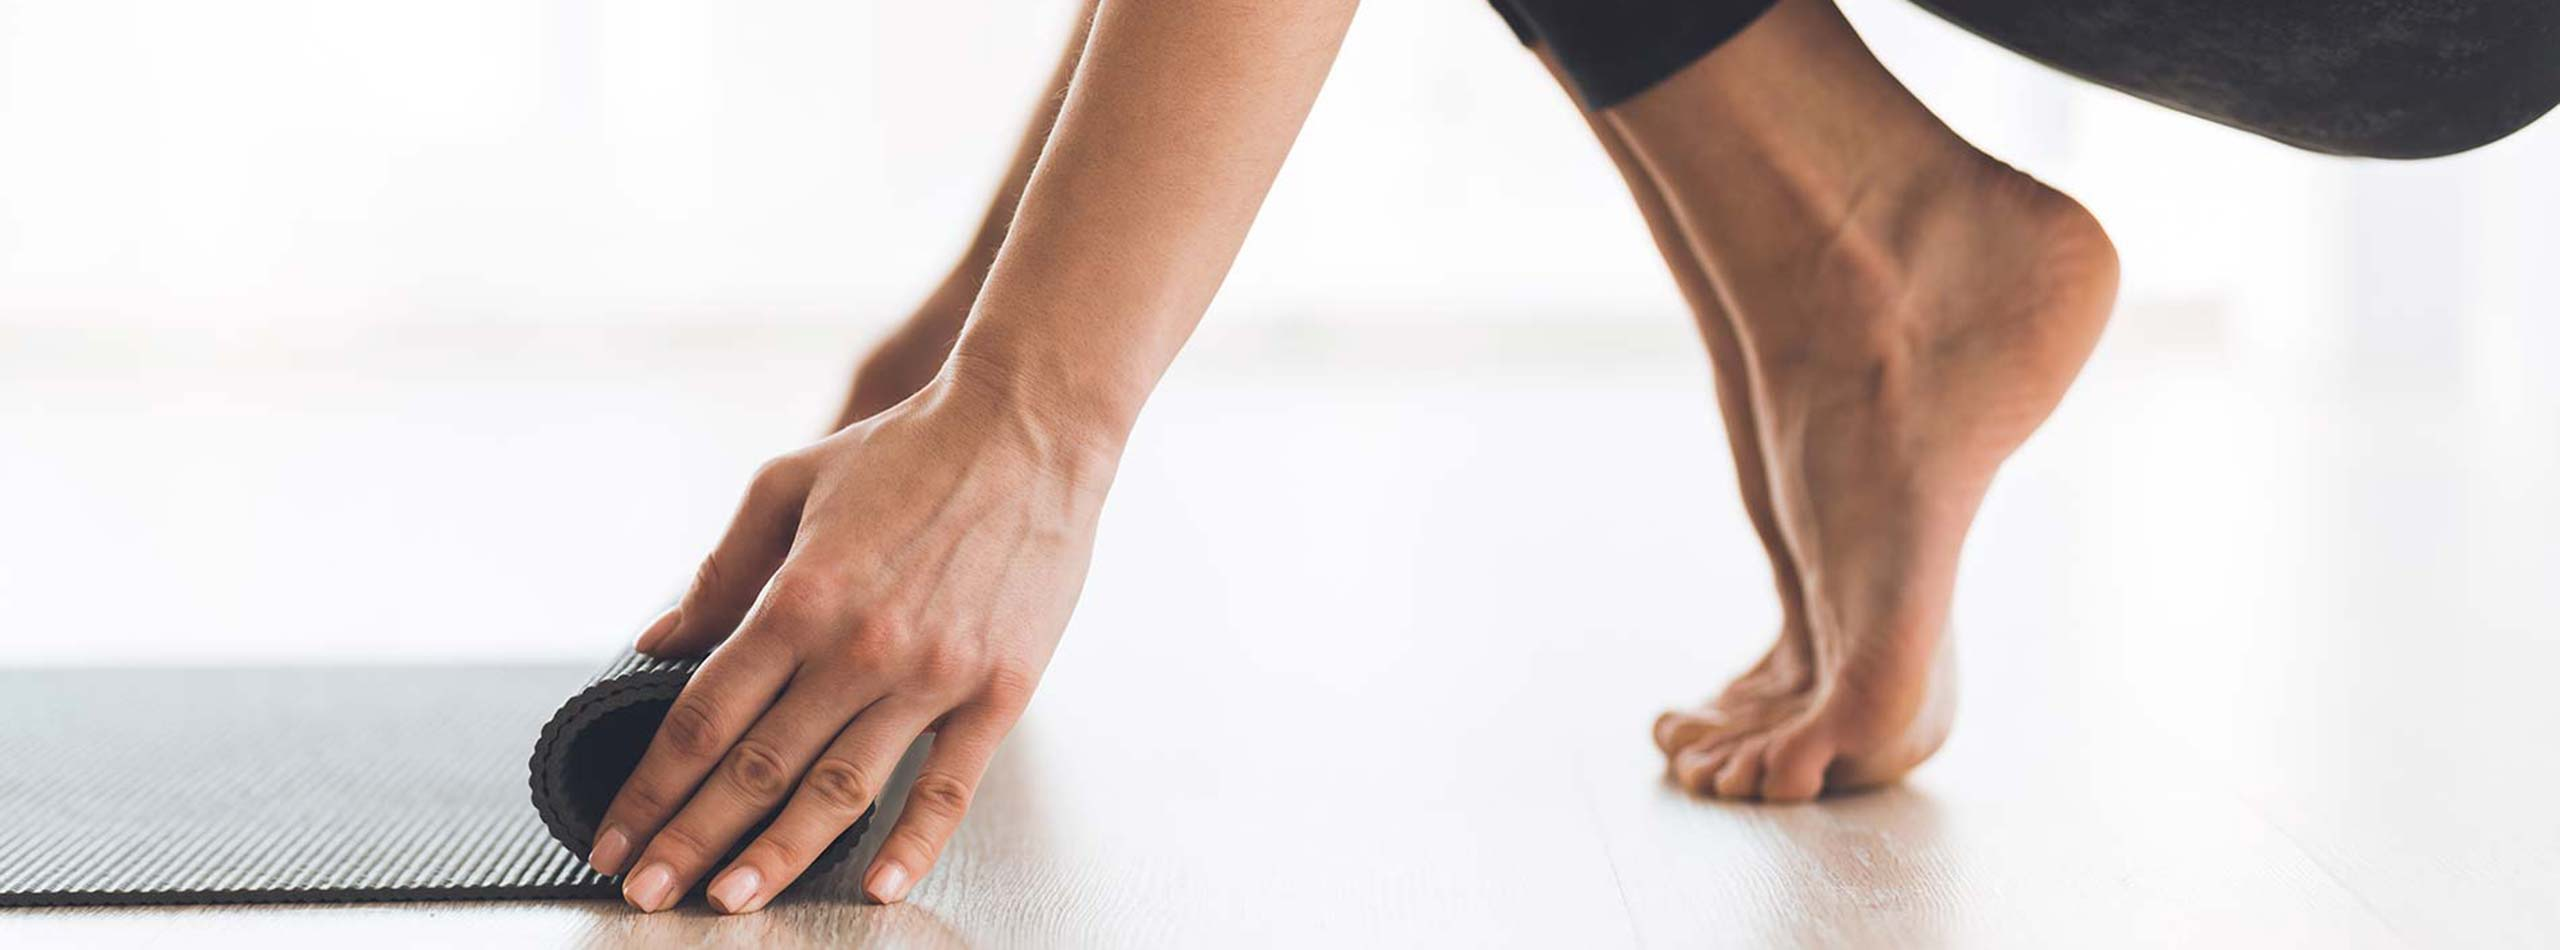 Ayurveda Gym for body and soul at the European Ayurveda® spa in Styria